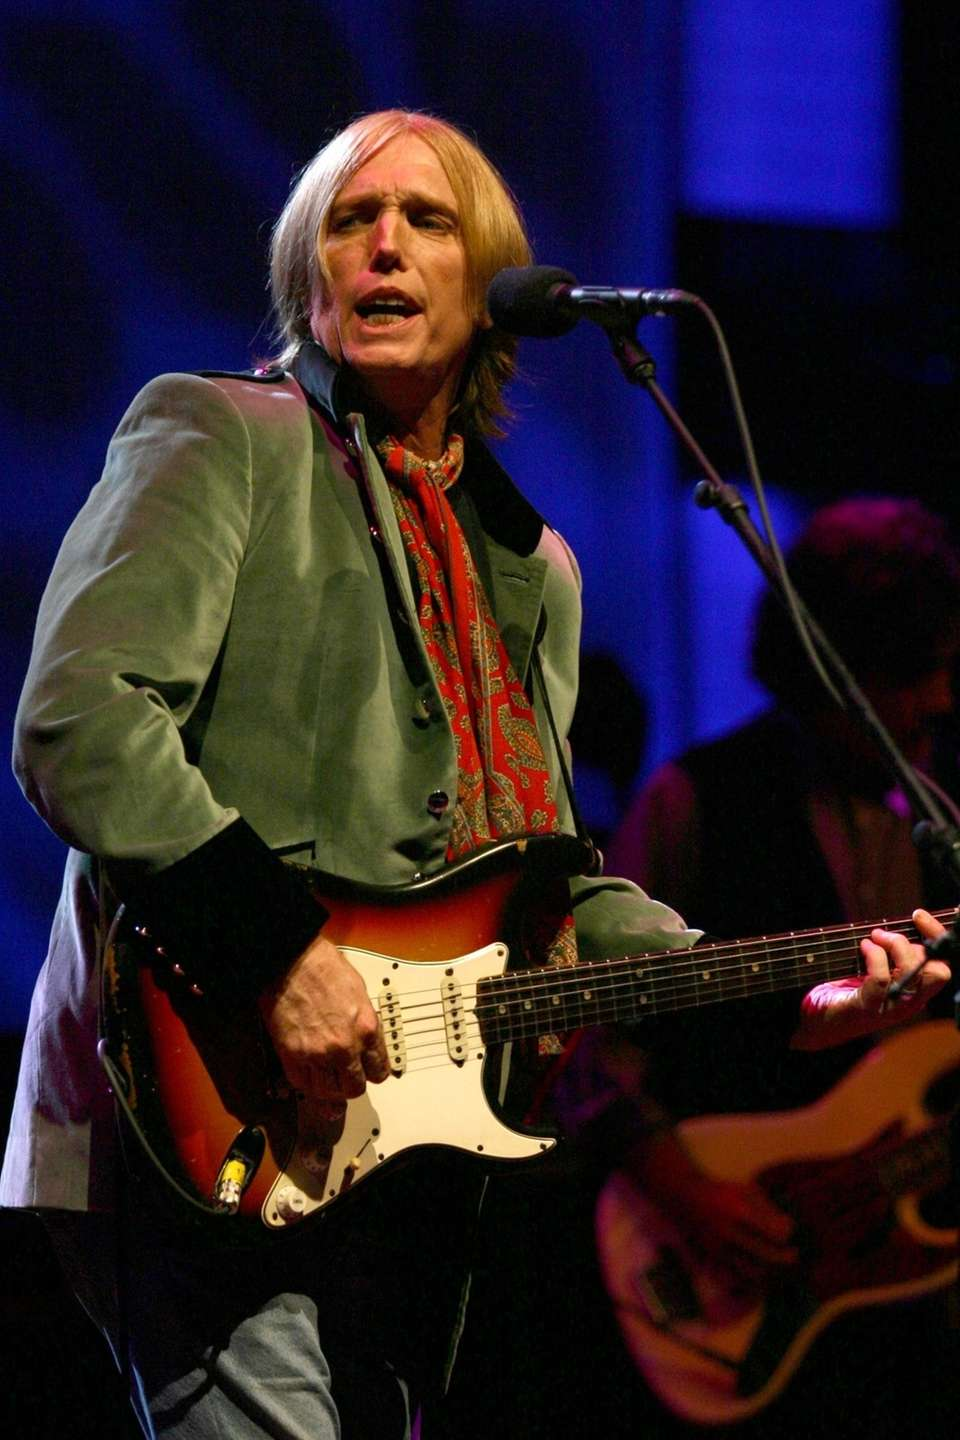 Tom Petty performs at Jones Beach on June